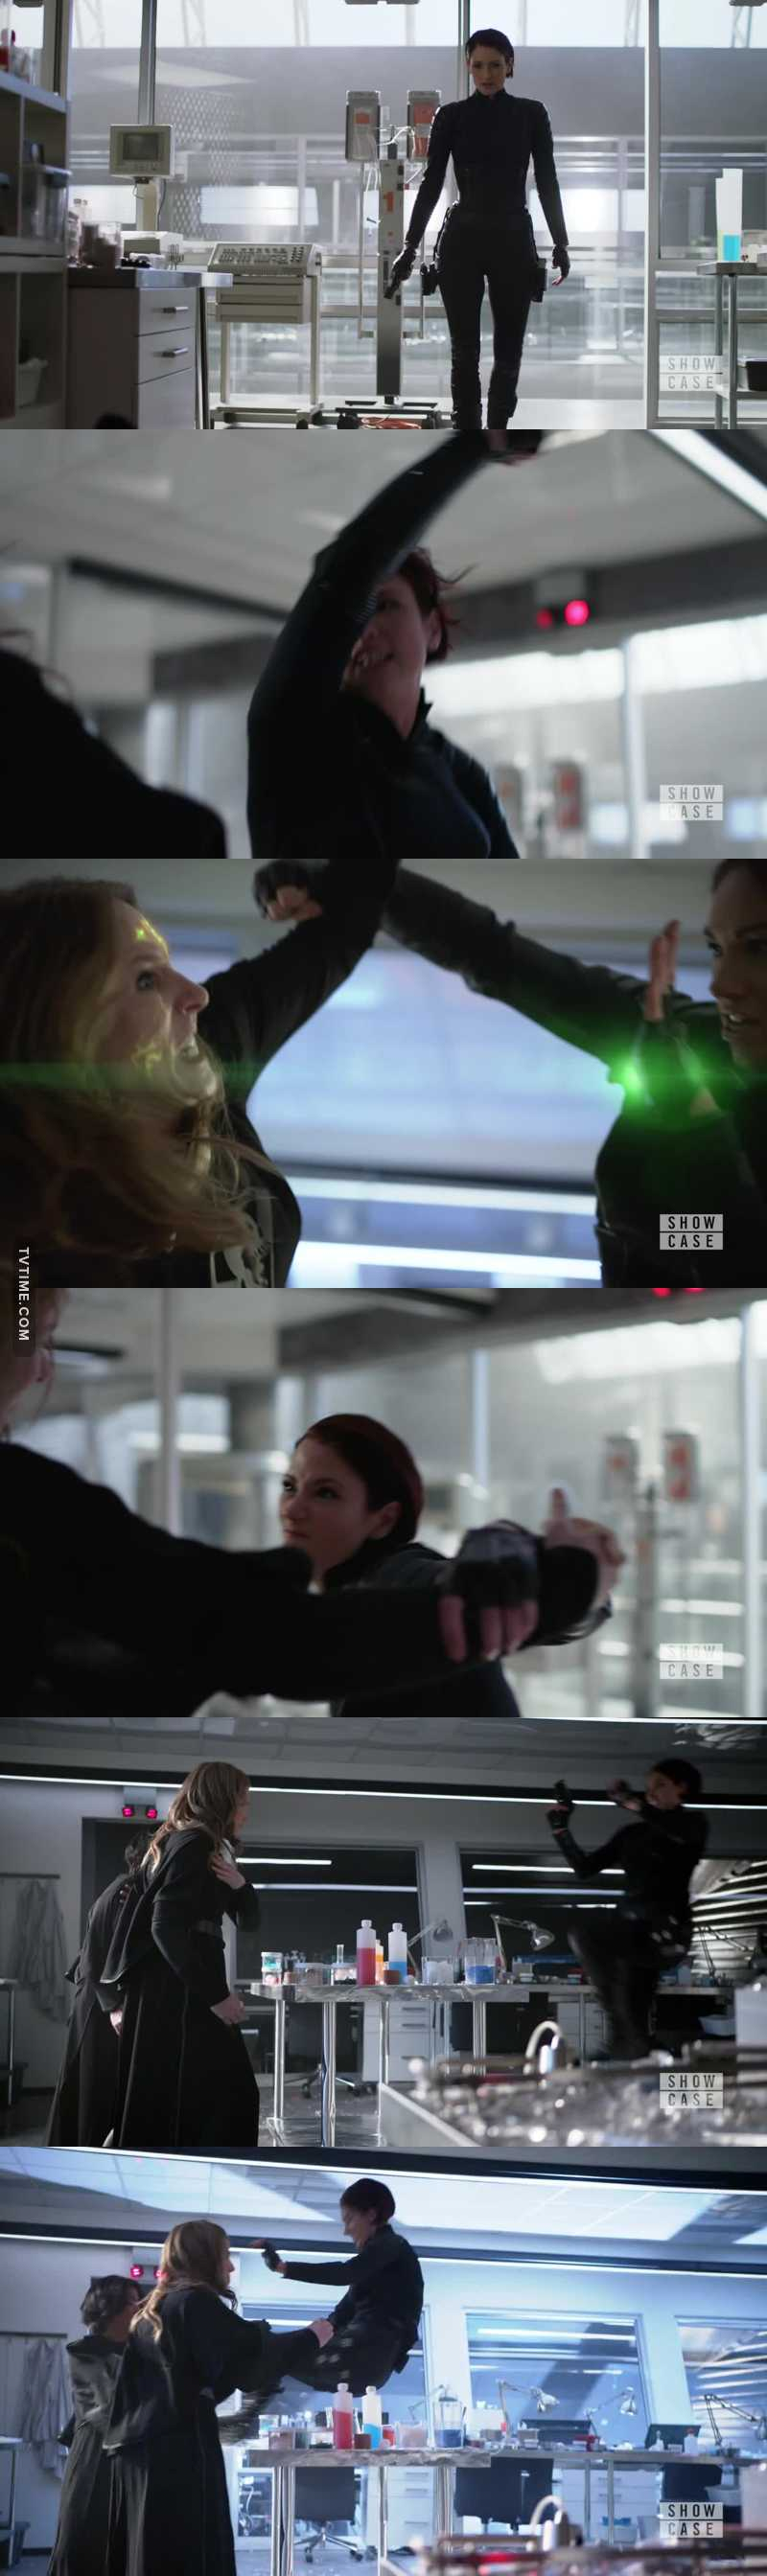 Now THAT was Badass !!!! If you weren't in Love with Alex then now u are !! I human Vs. 2 Kryptonians and she kicked ass ladies and gentlemen!!! 😍😍😍